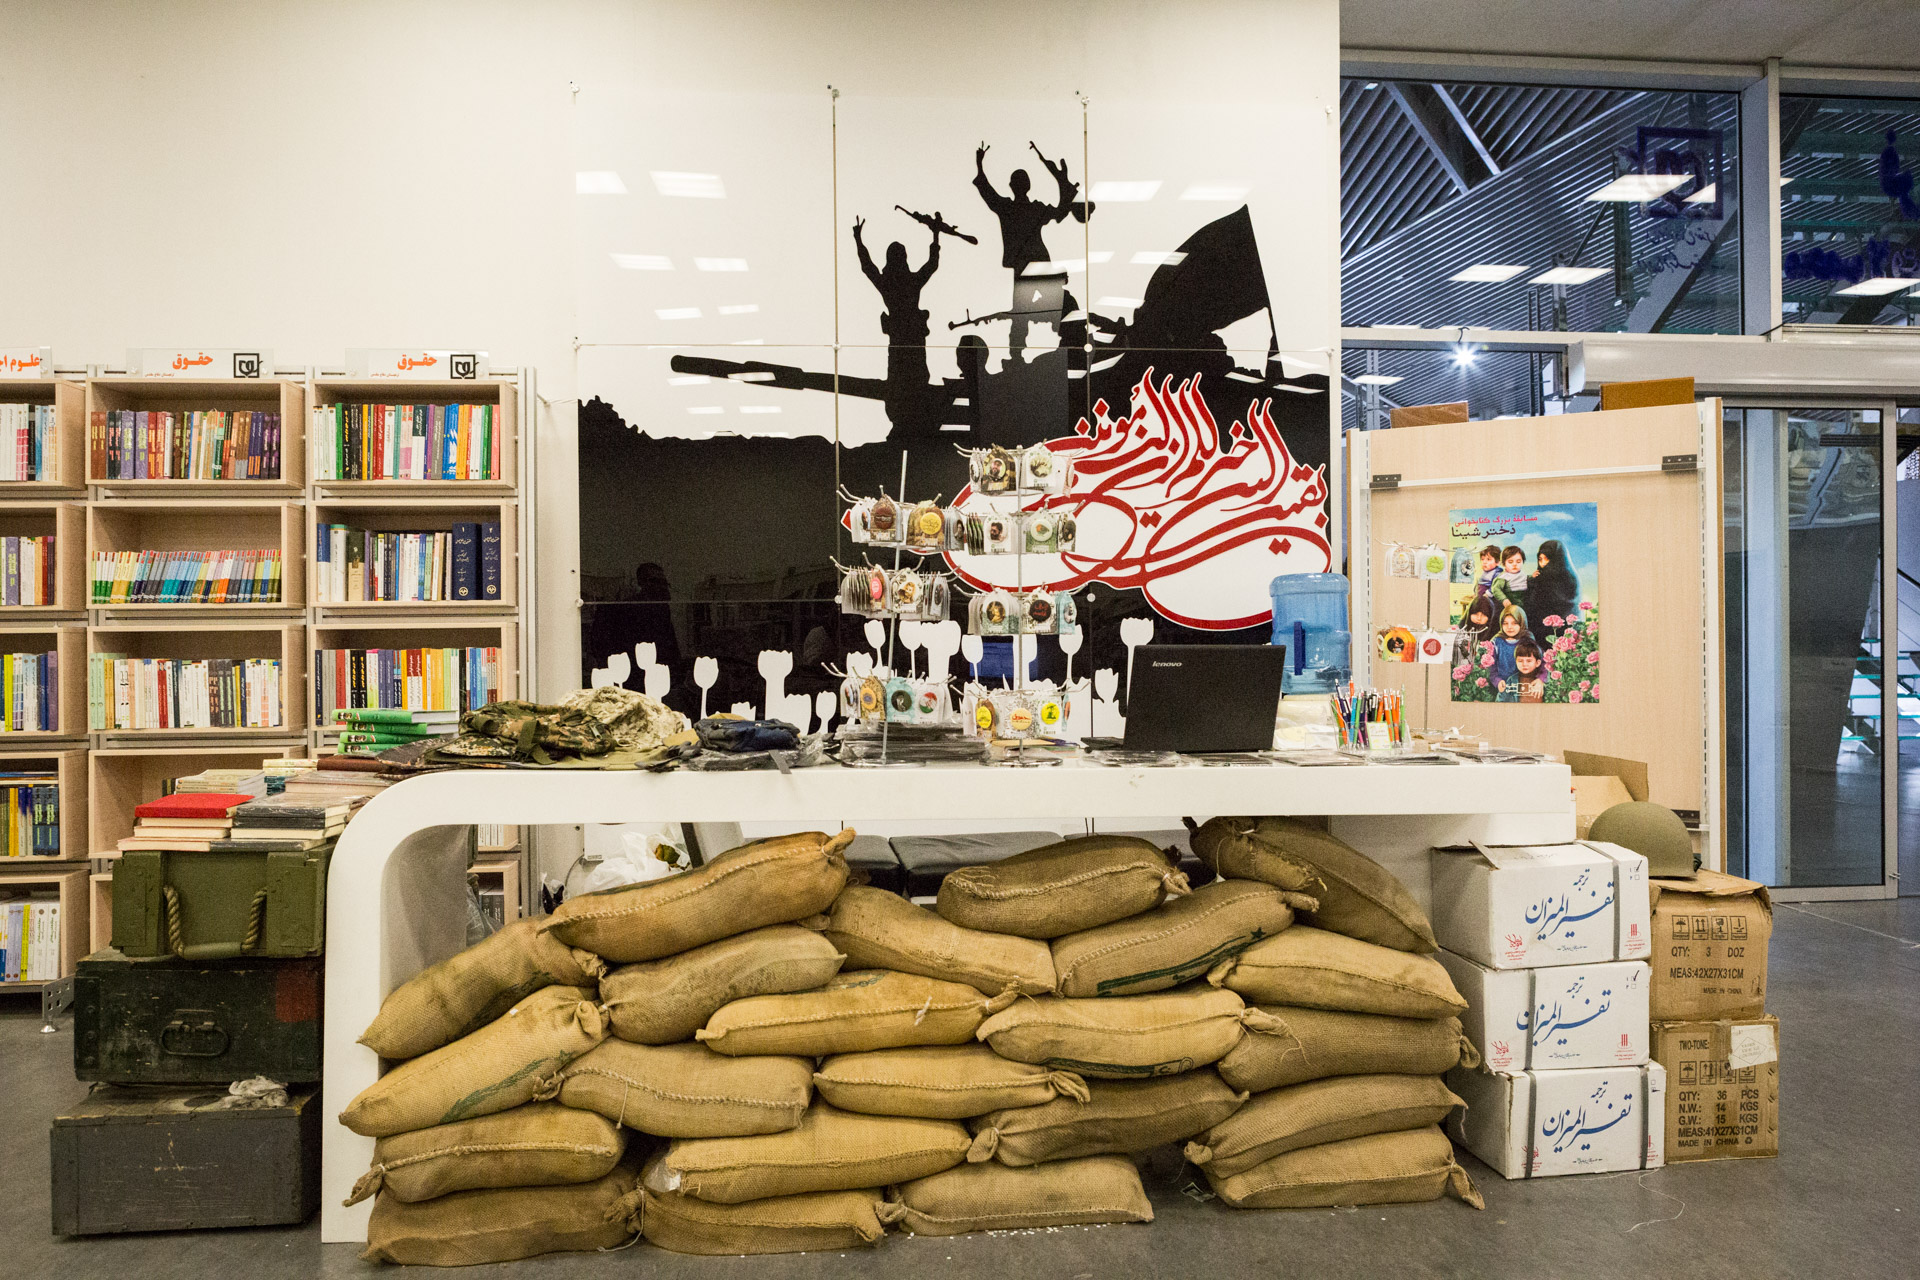 The counter at the gift shop of the museum is decorated with sand bags and war memorabilia.